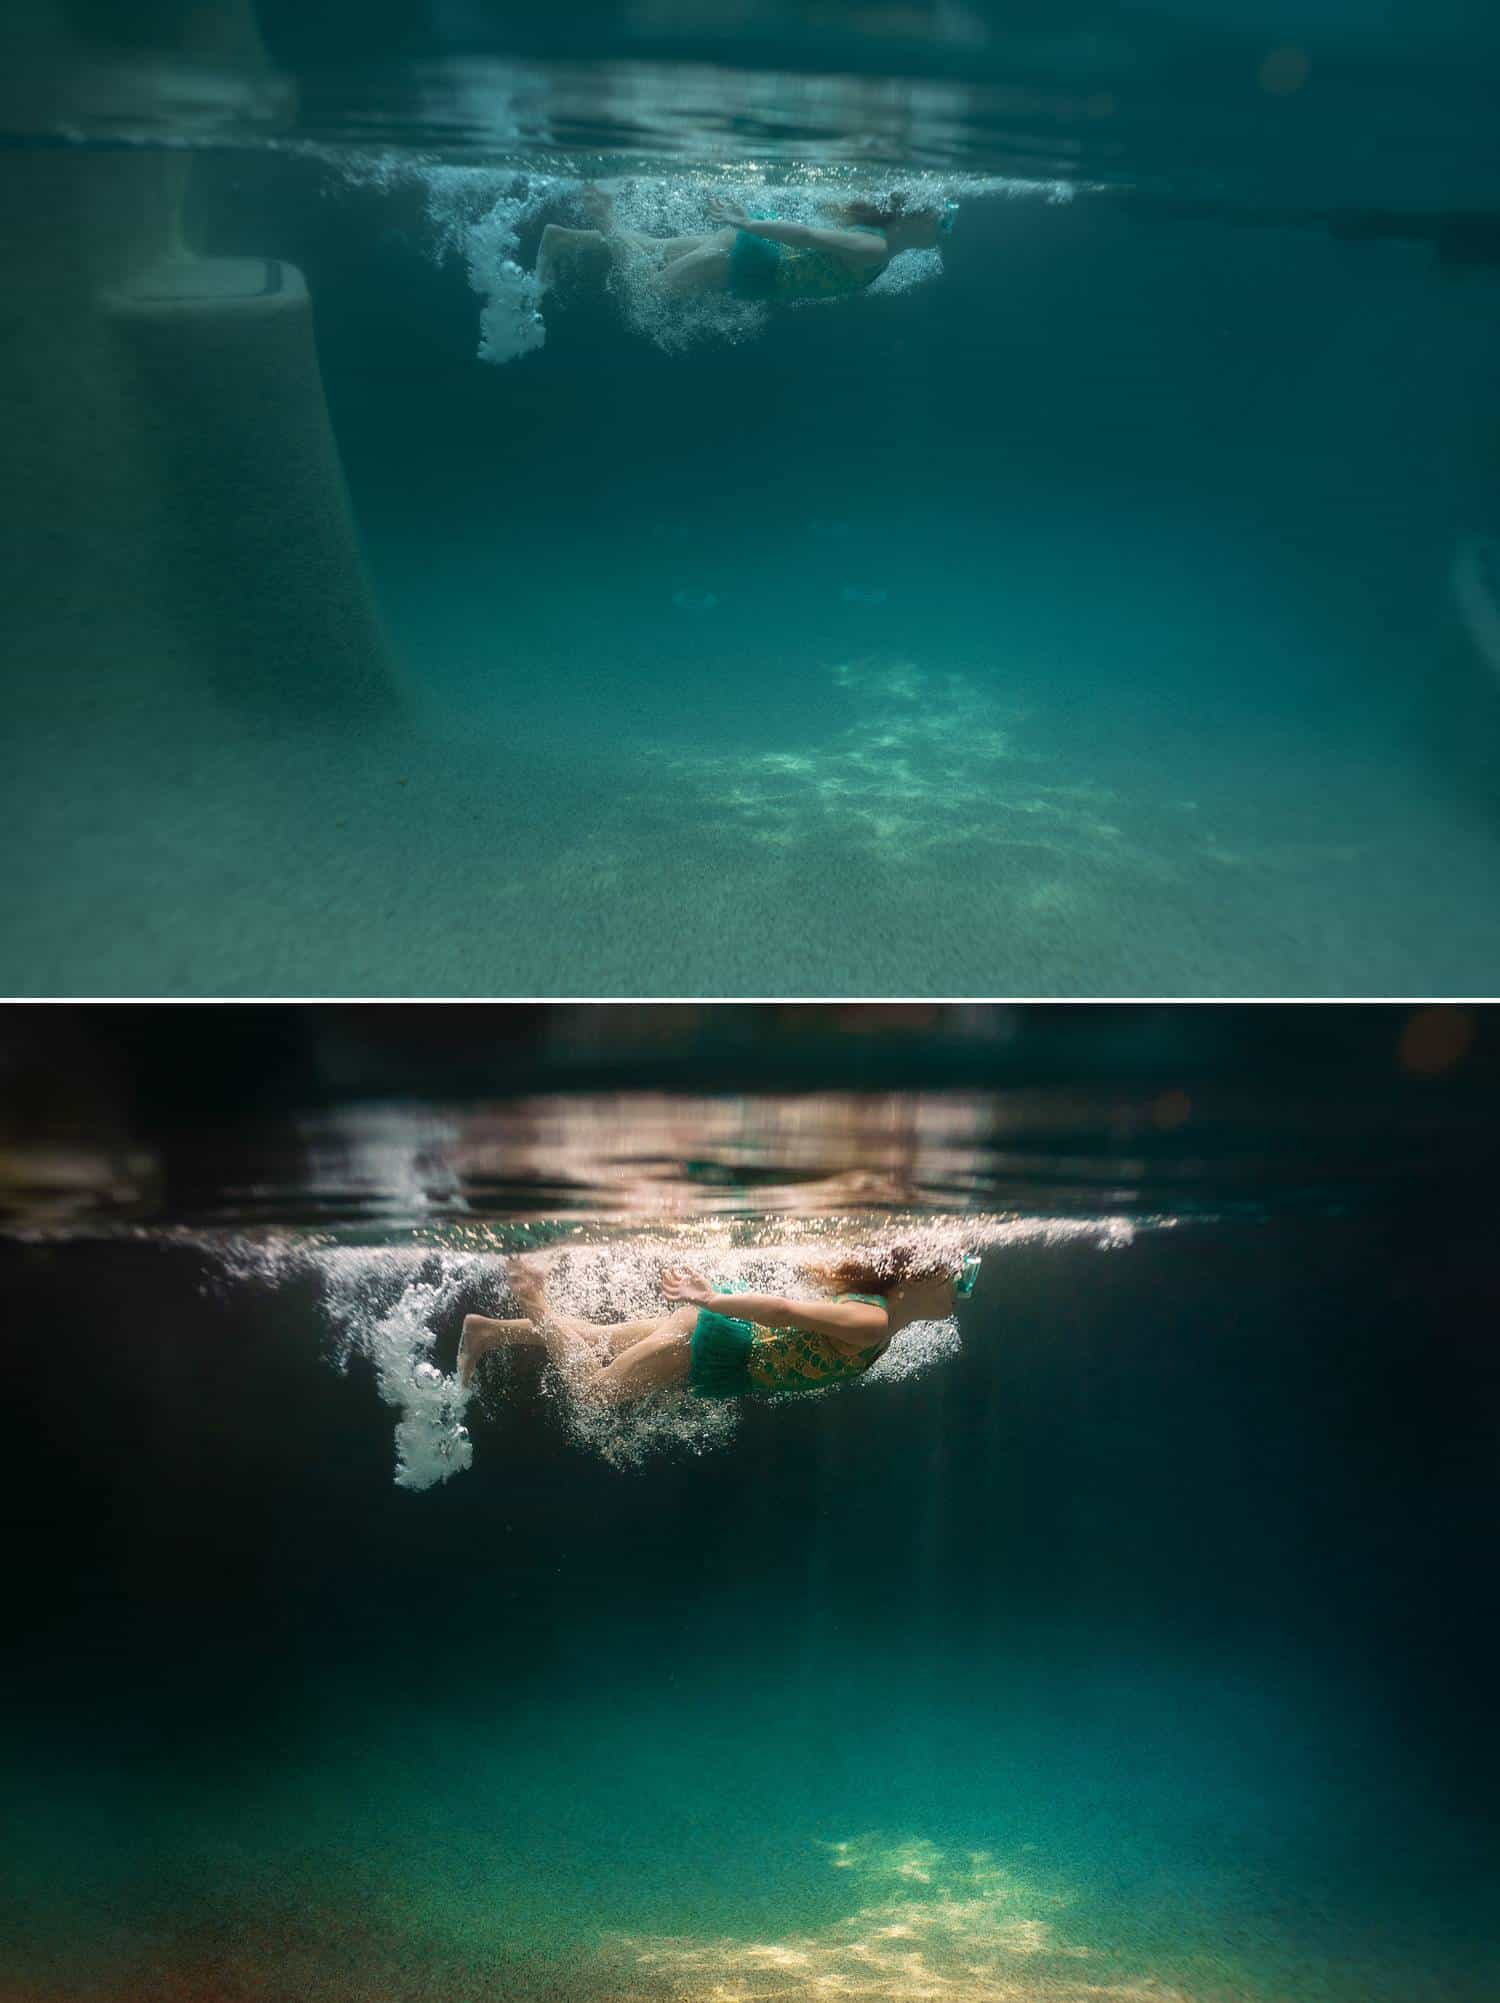 Before and after photos show the post-production process of one of Elizabeth Blank's underwater photographs